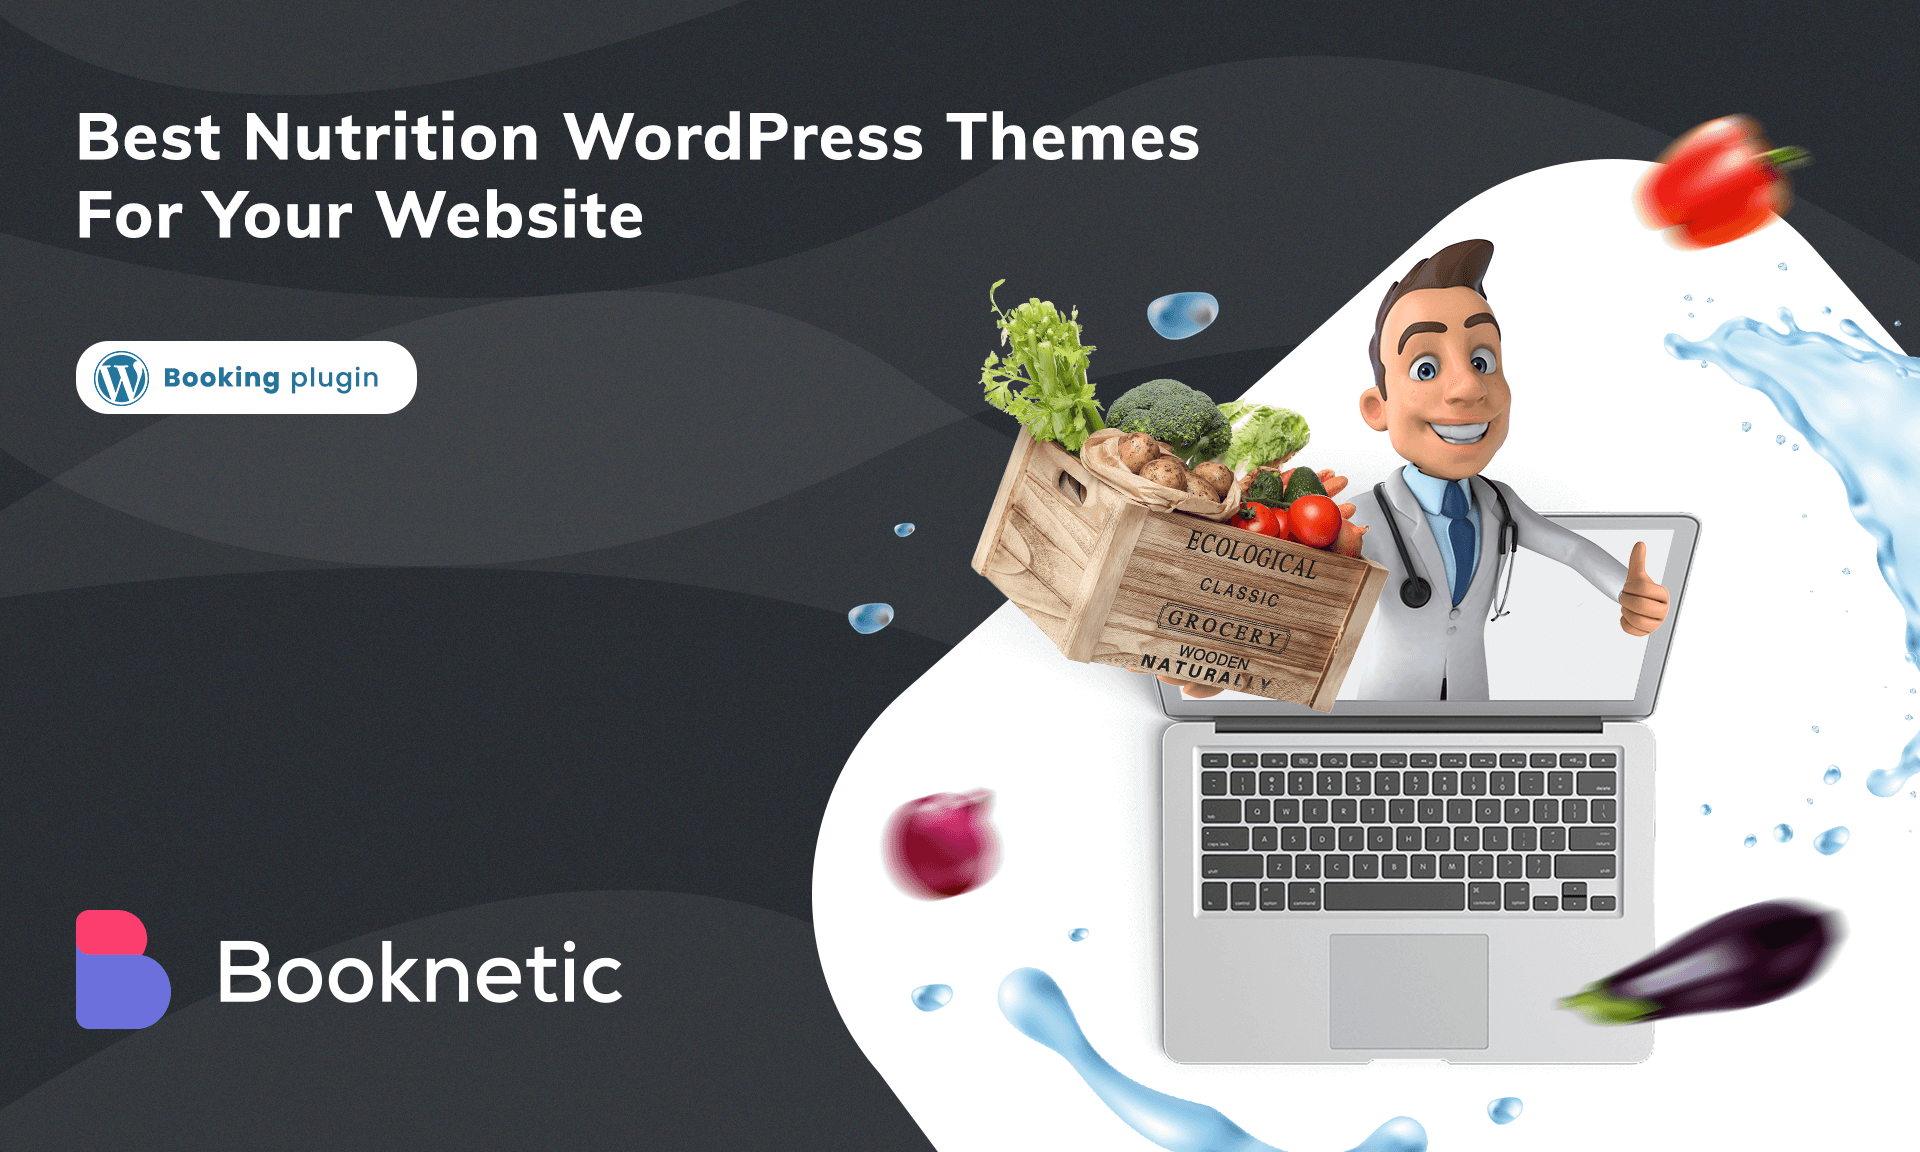 Best nutrition WordPress themes for your website